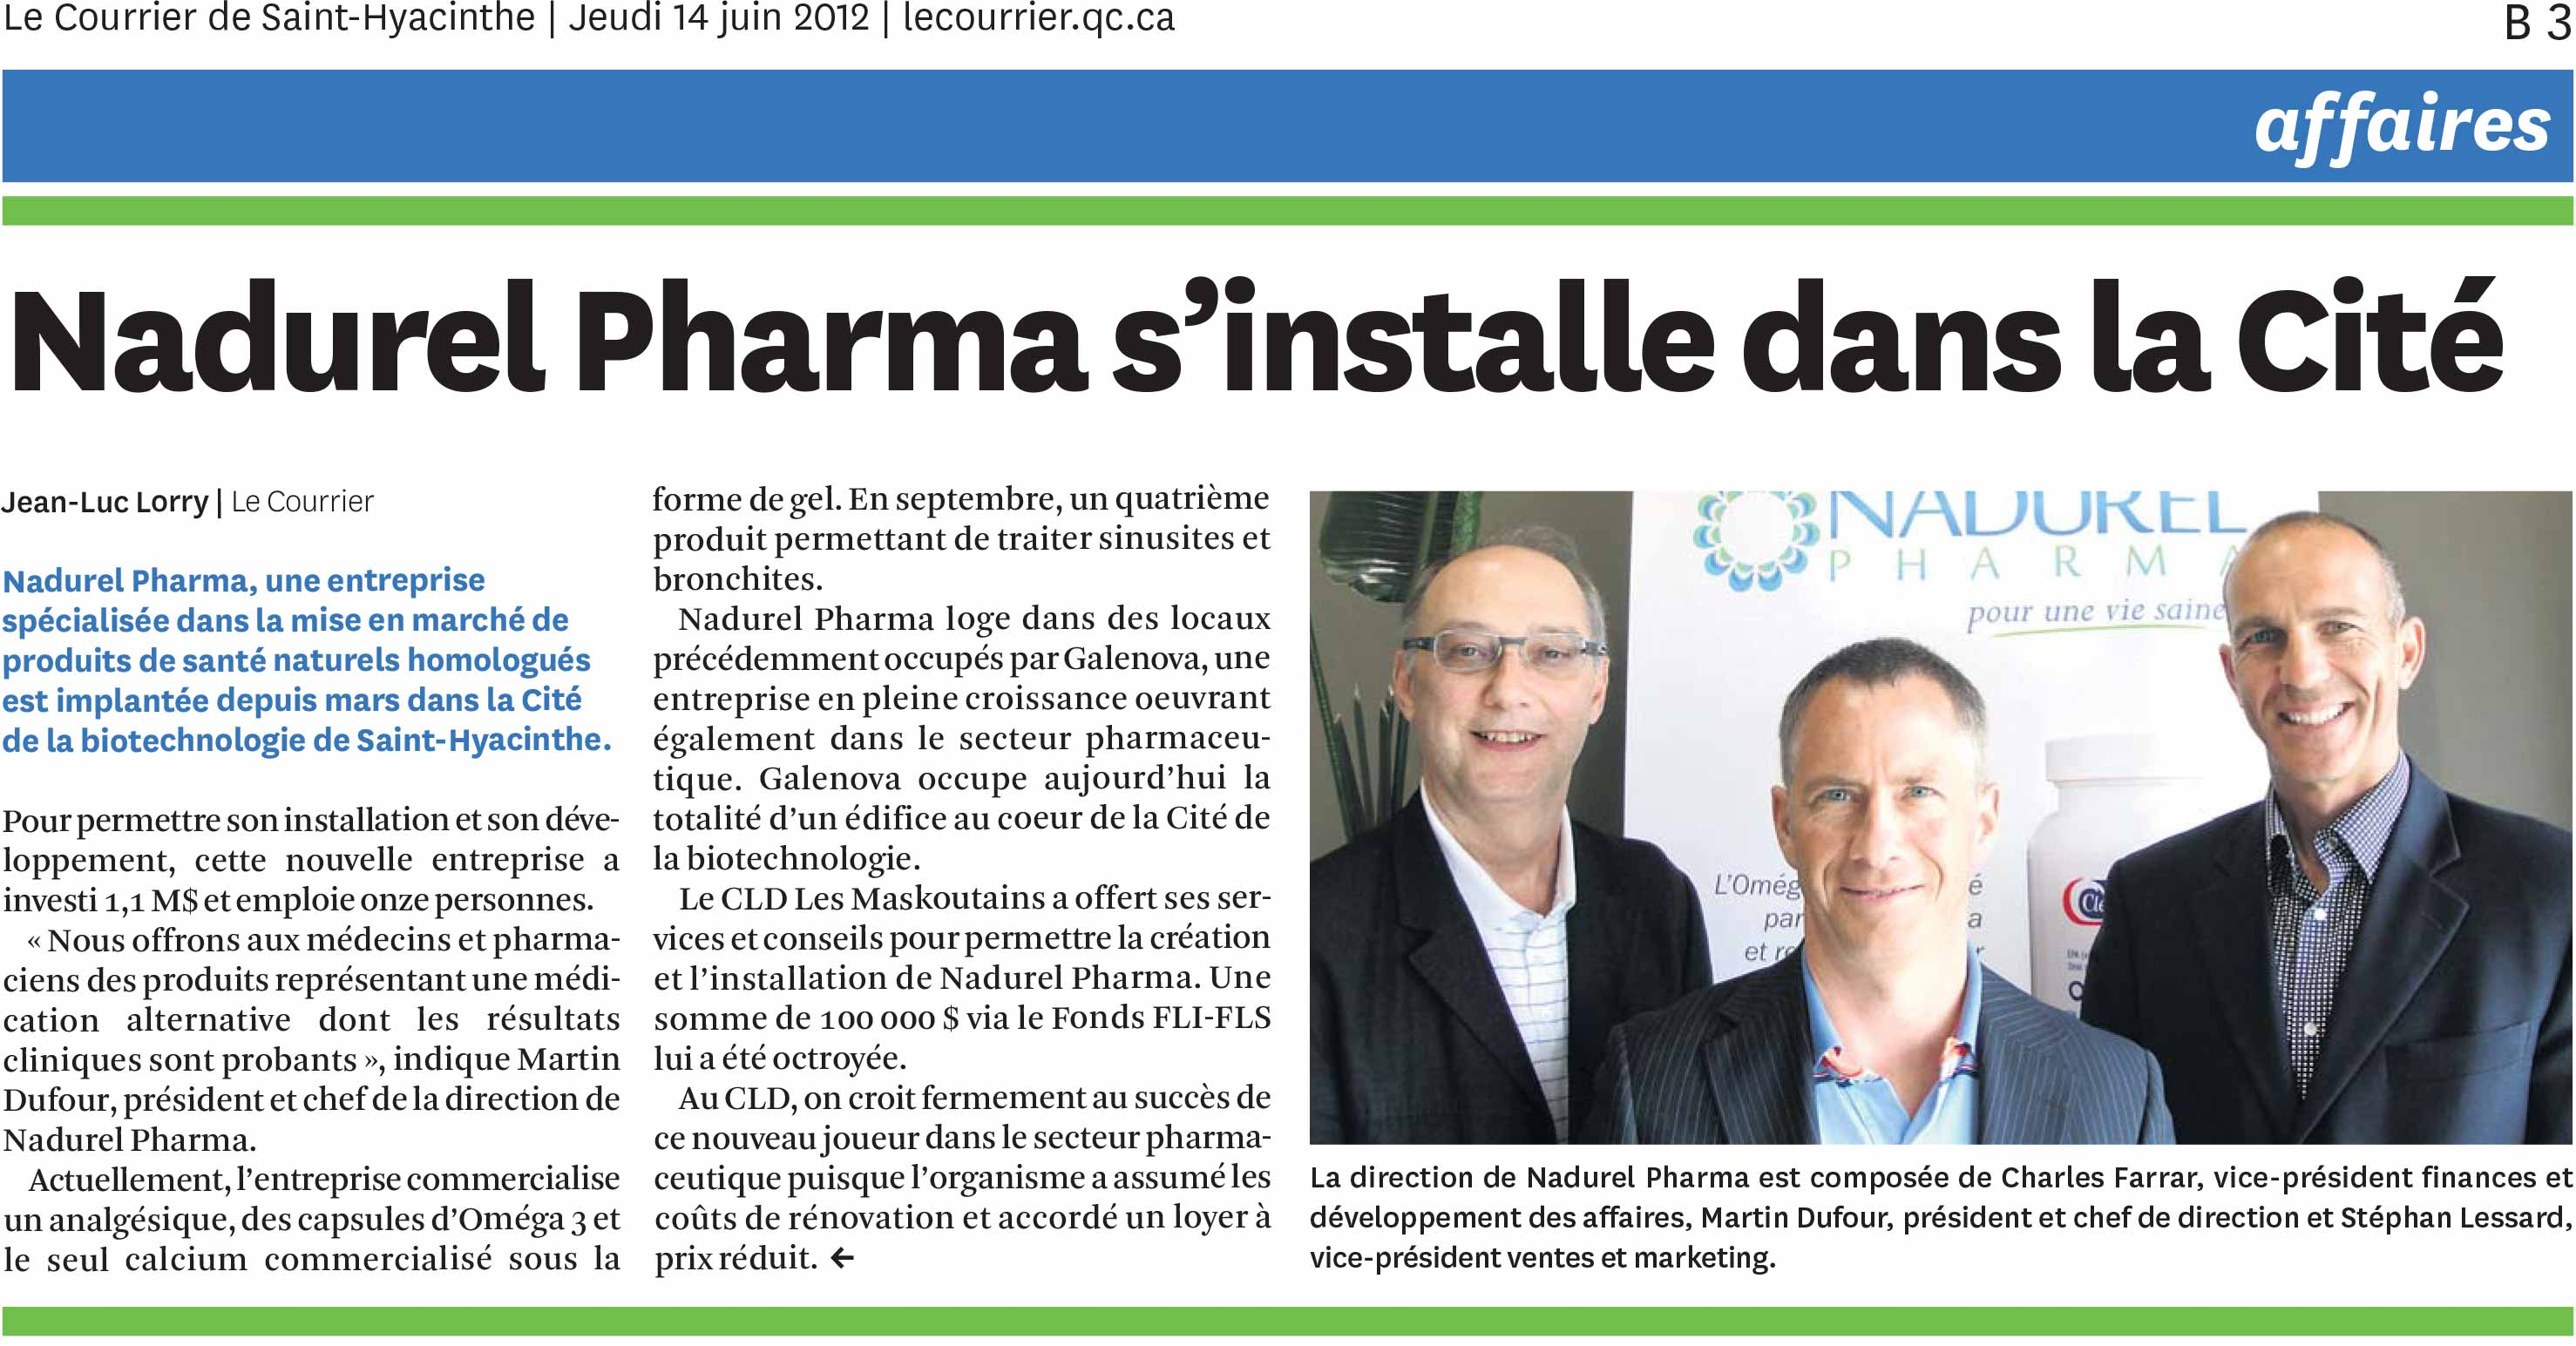 photo de Charles Farrar, Martin Dufour et Stephan Lessard, dans un article de journal le courrier st hyacinthe